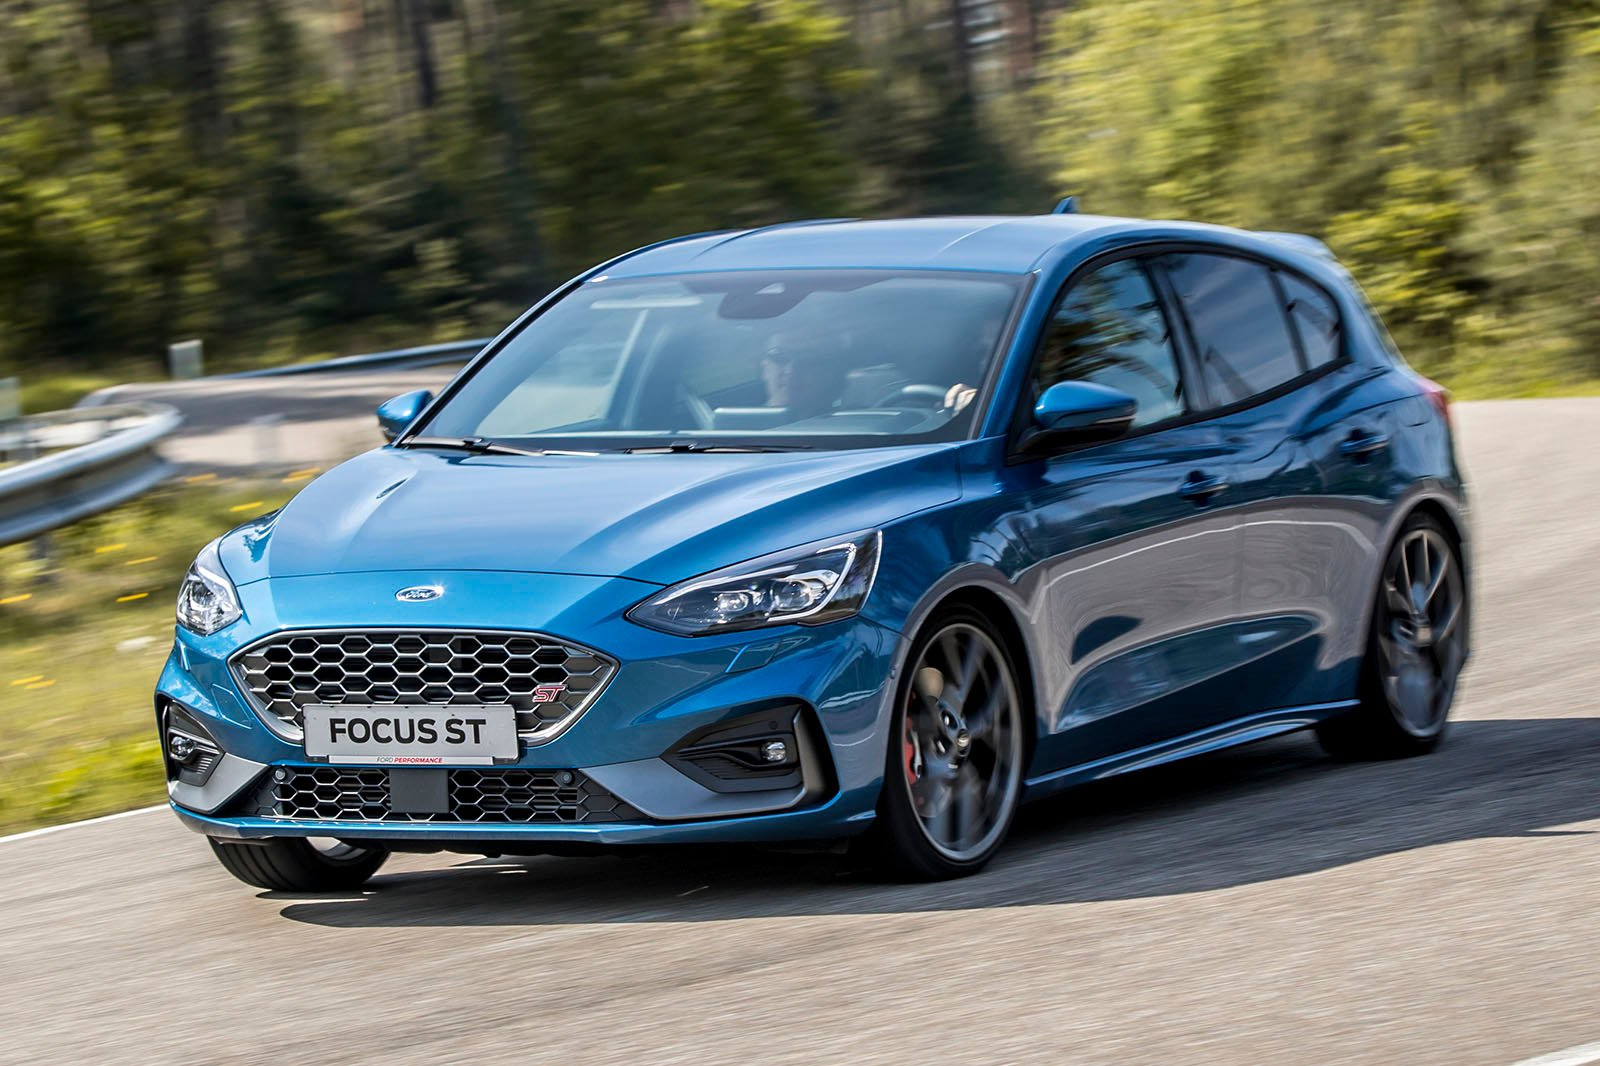 Ford Focus ST 2019 LHD launch car front cornering shot